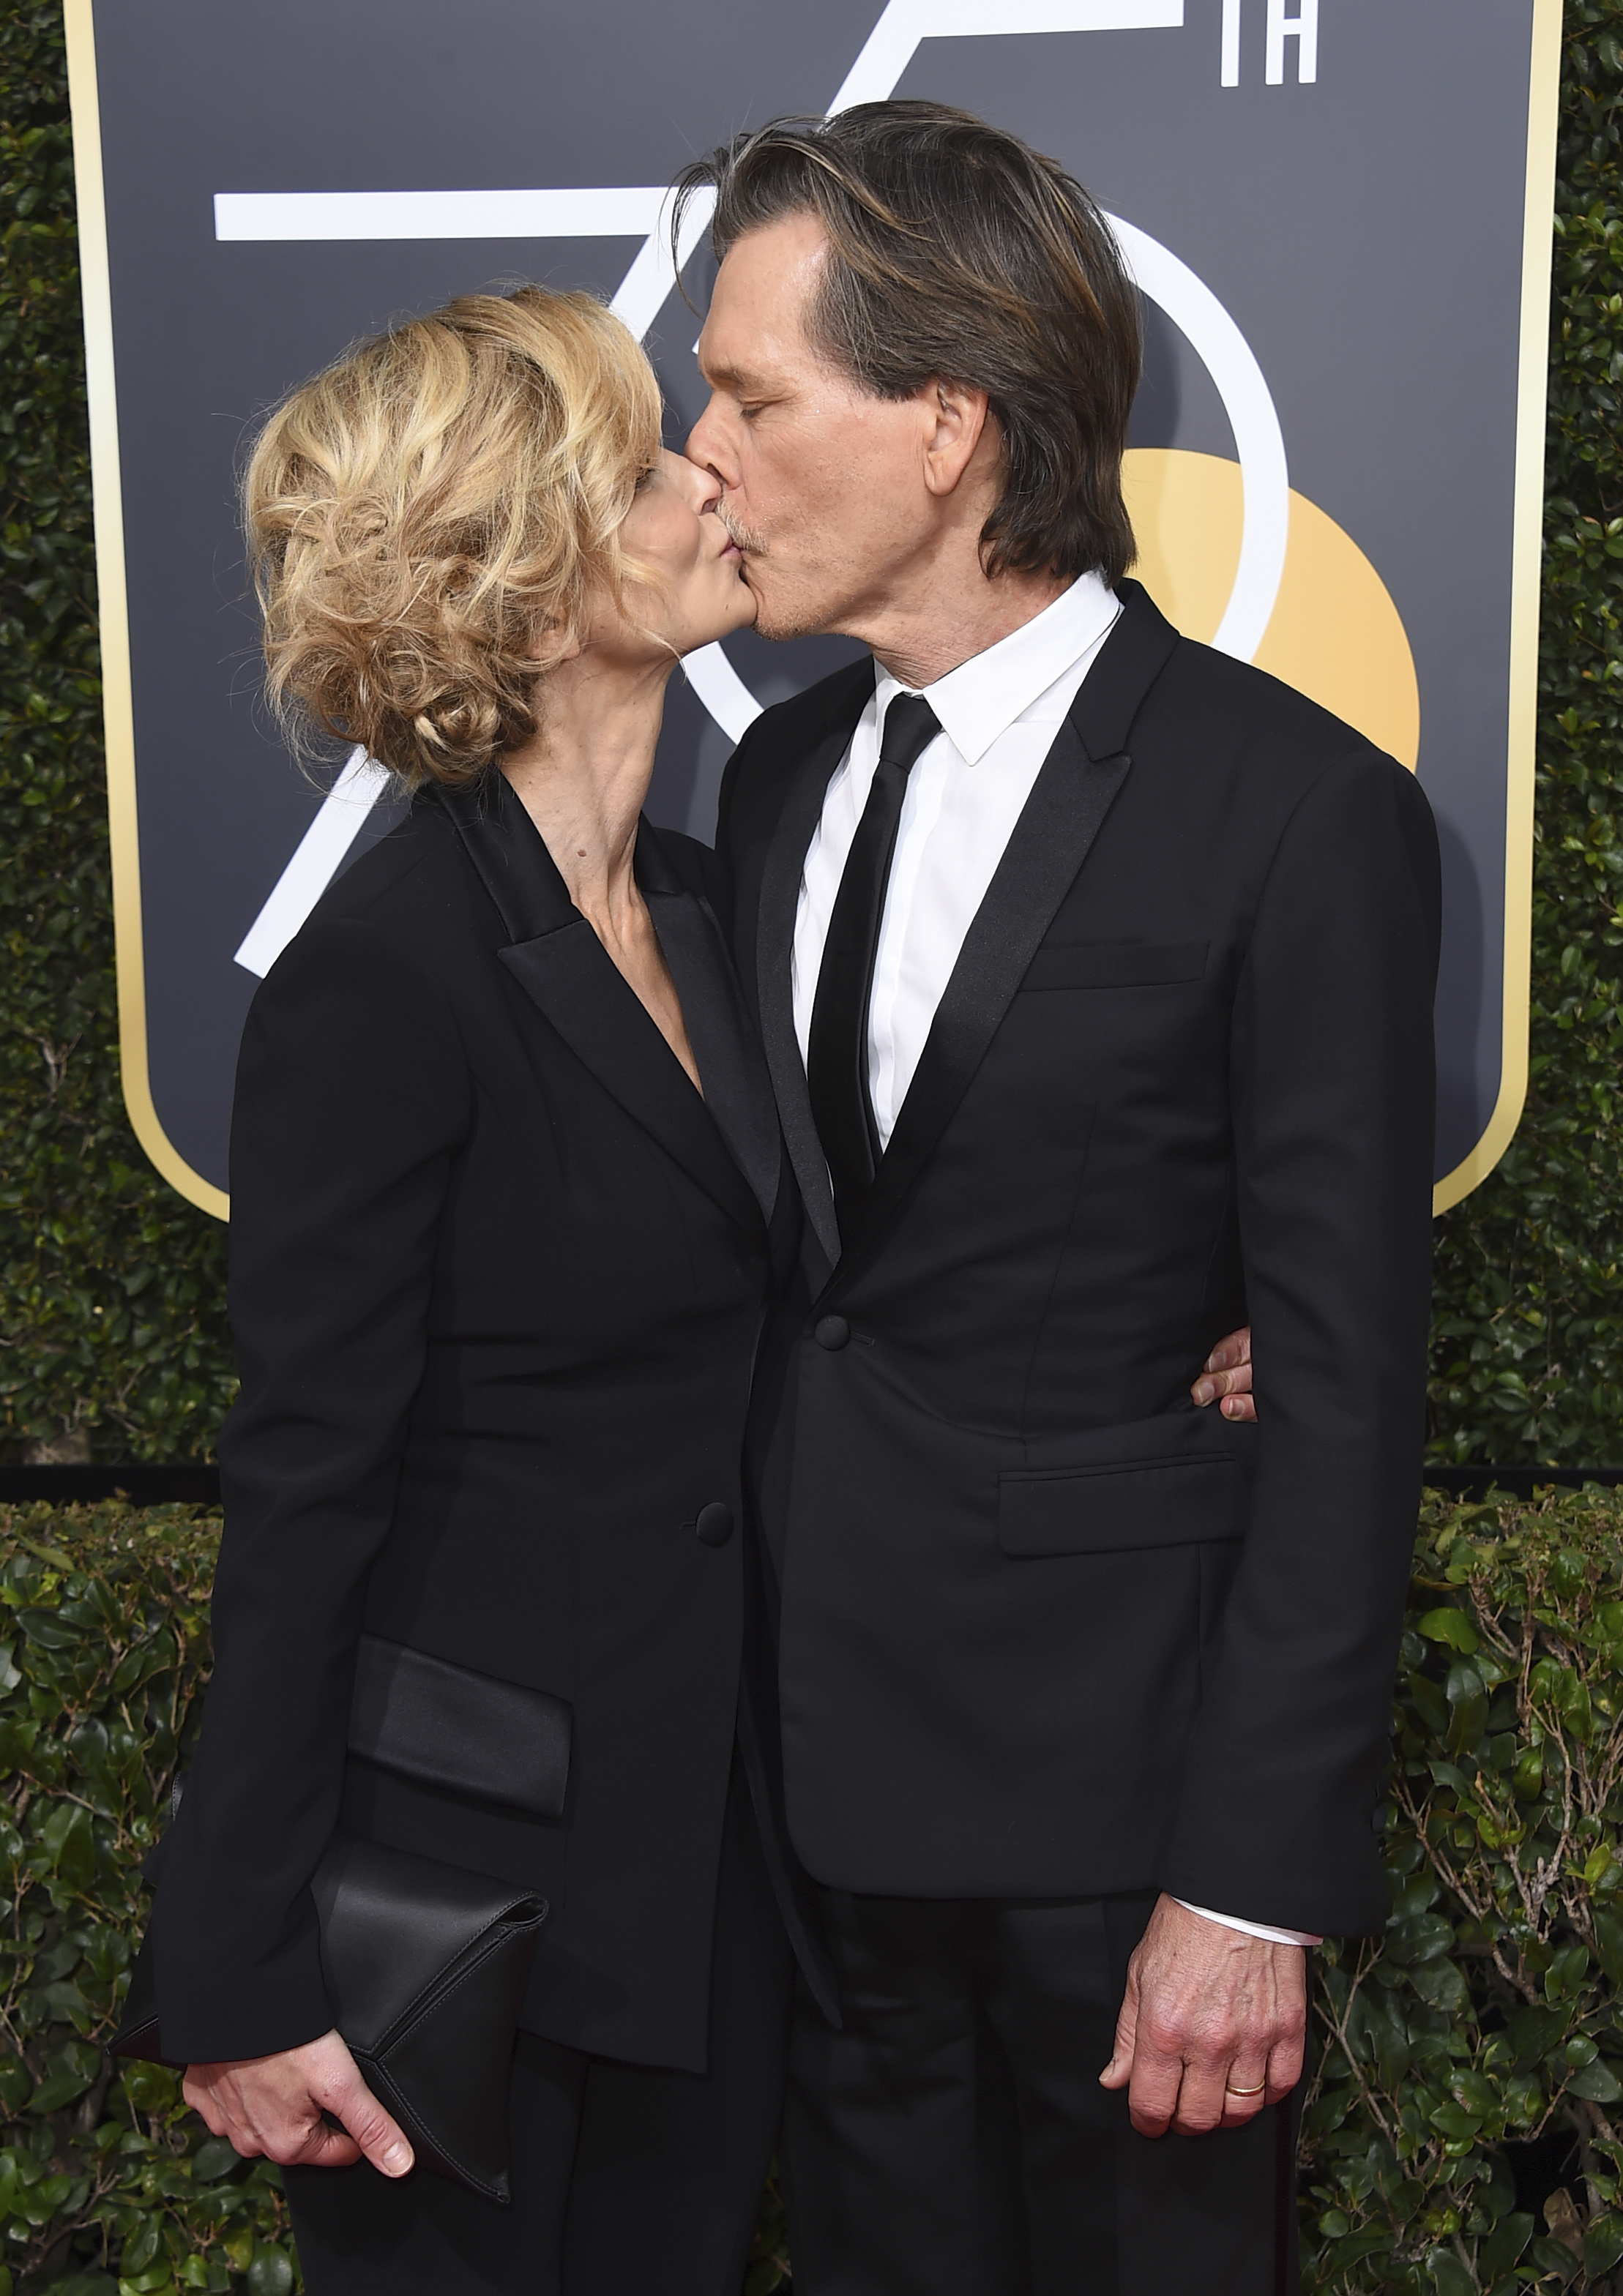 <div class='meta'><div class='origin-logo' data-origin='AP'></div><span class='caption-text' data-credit='Jordan Strauss/Invision/AP'>Kyra Sedgwick, left, and Kevin Bacon kiss as they arrive at the 75th annual Golden Globe Awards at the Beverly Hilton Hotel on Sunday, Jan. 7, 2018, in Beverly Hills, Calif.</span></div>